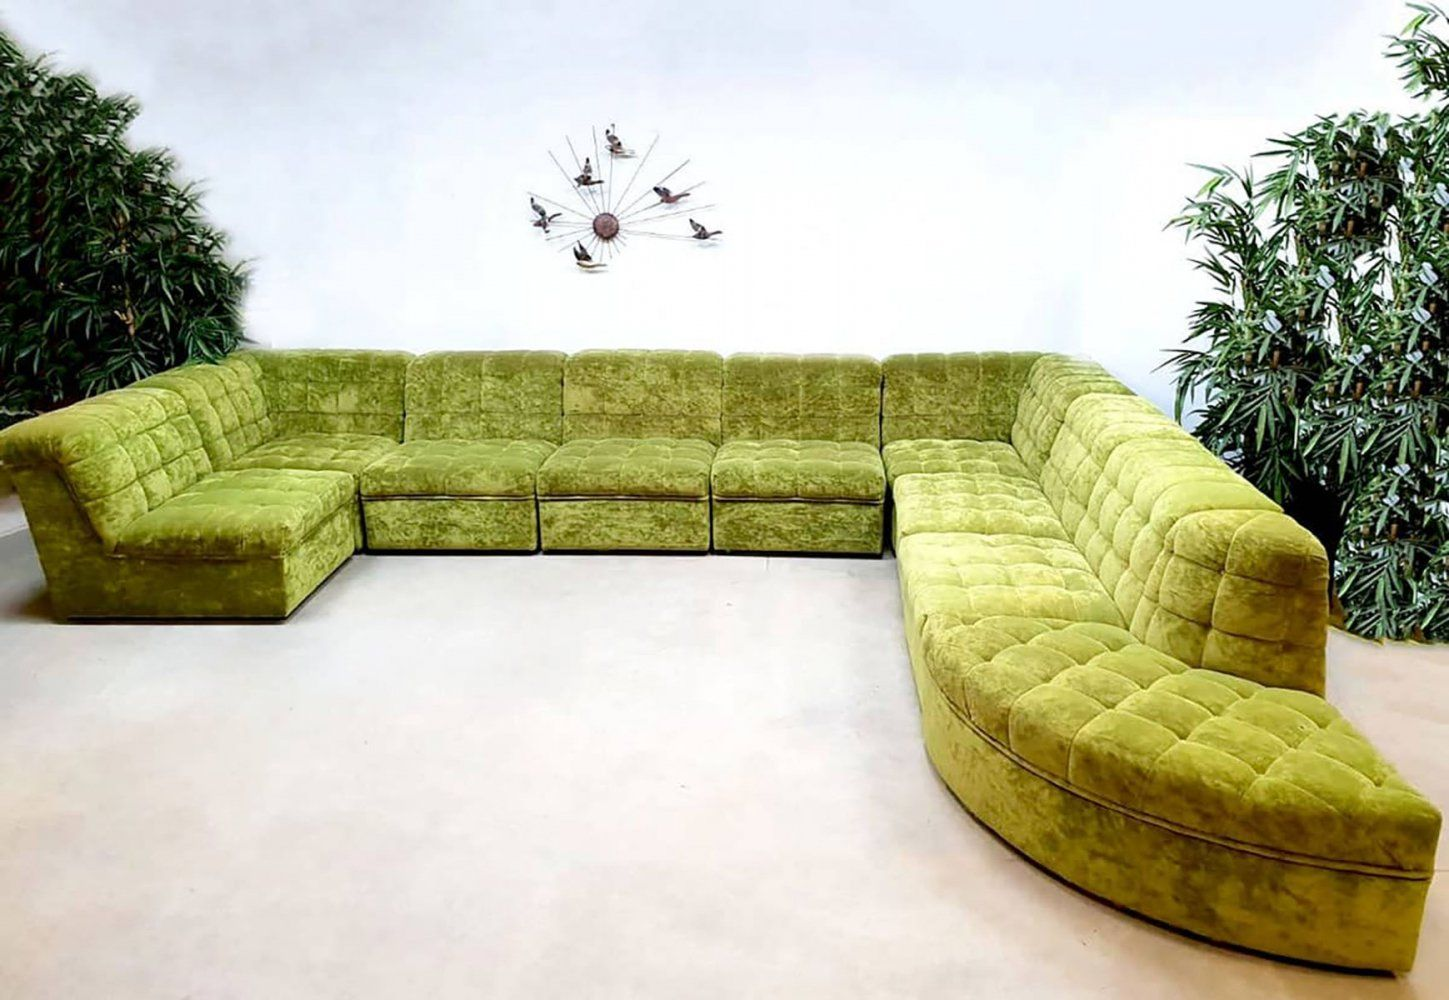 Groovy Vintage Xxl Modular Sofa In Lime Green Velvet 1960S Bralicious Painted Fabric Chair Ideas Braliciousco